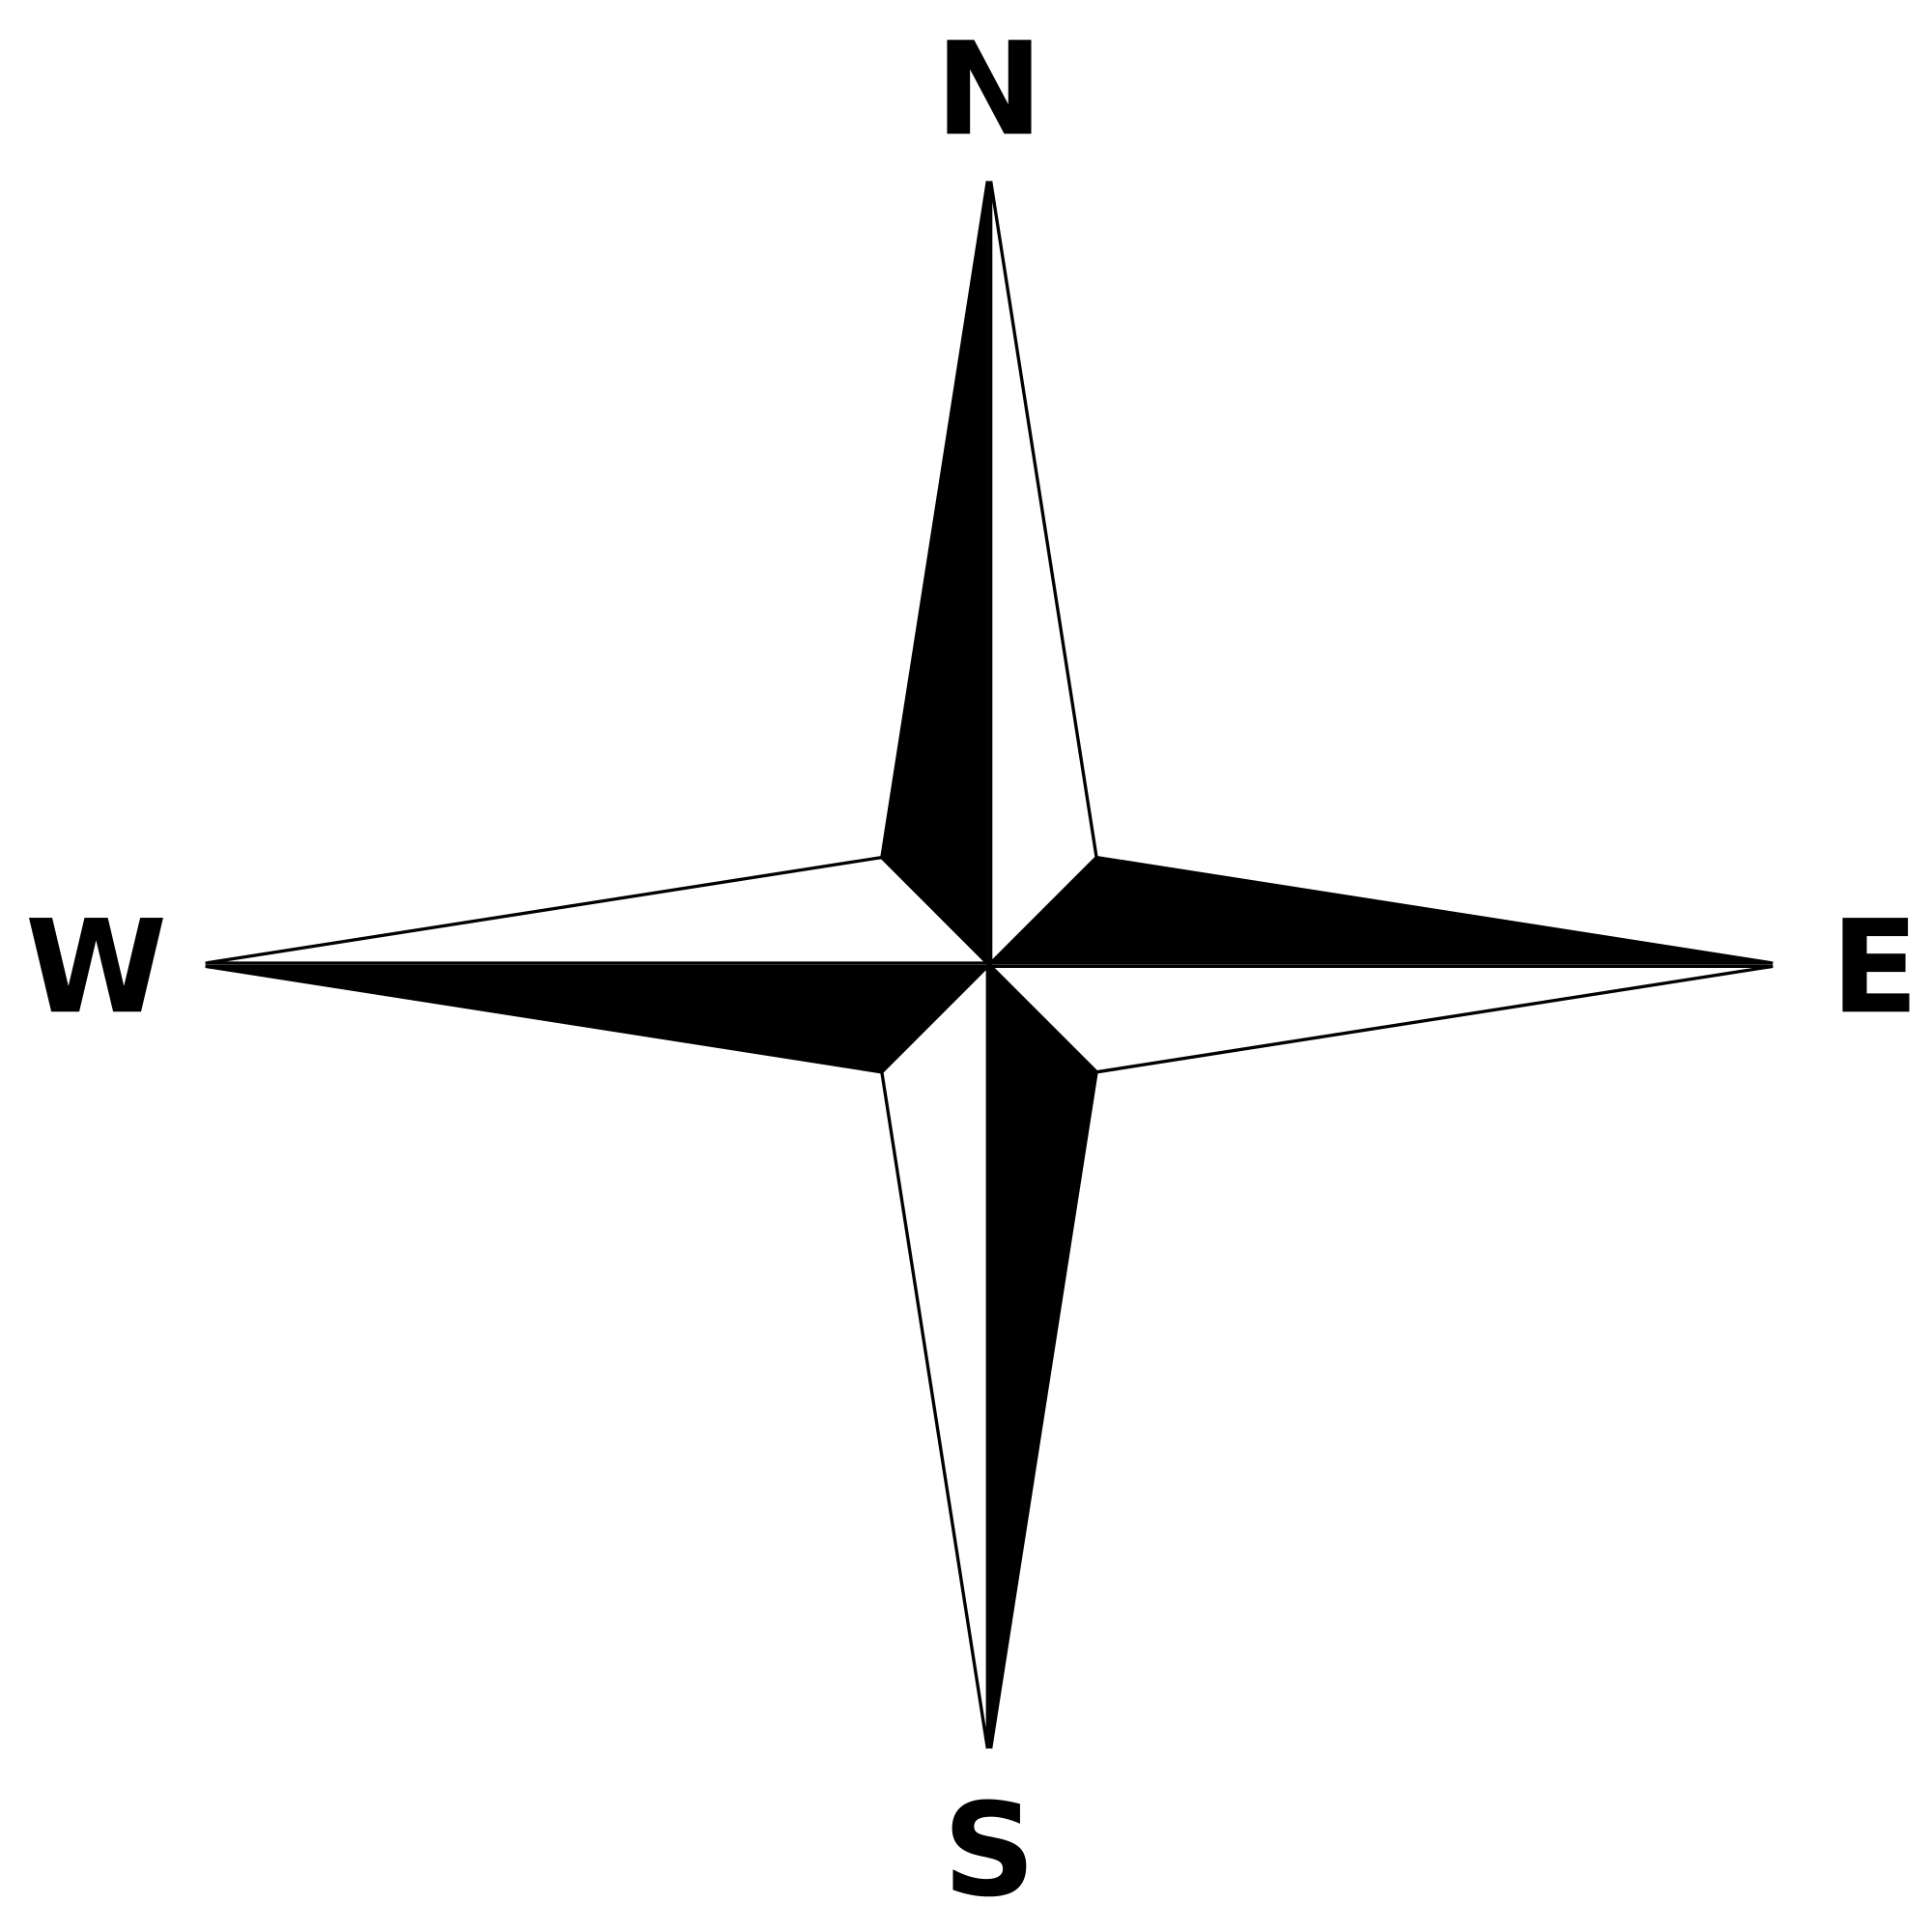 png black and white transparent compass simple #116688046